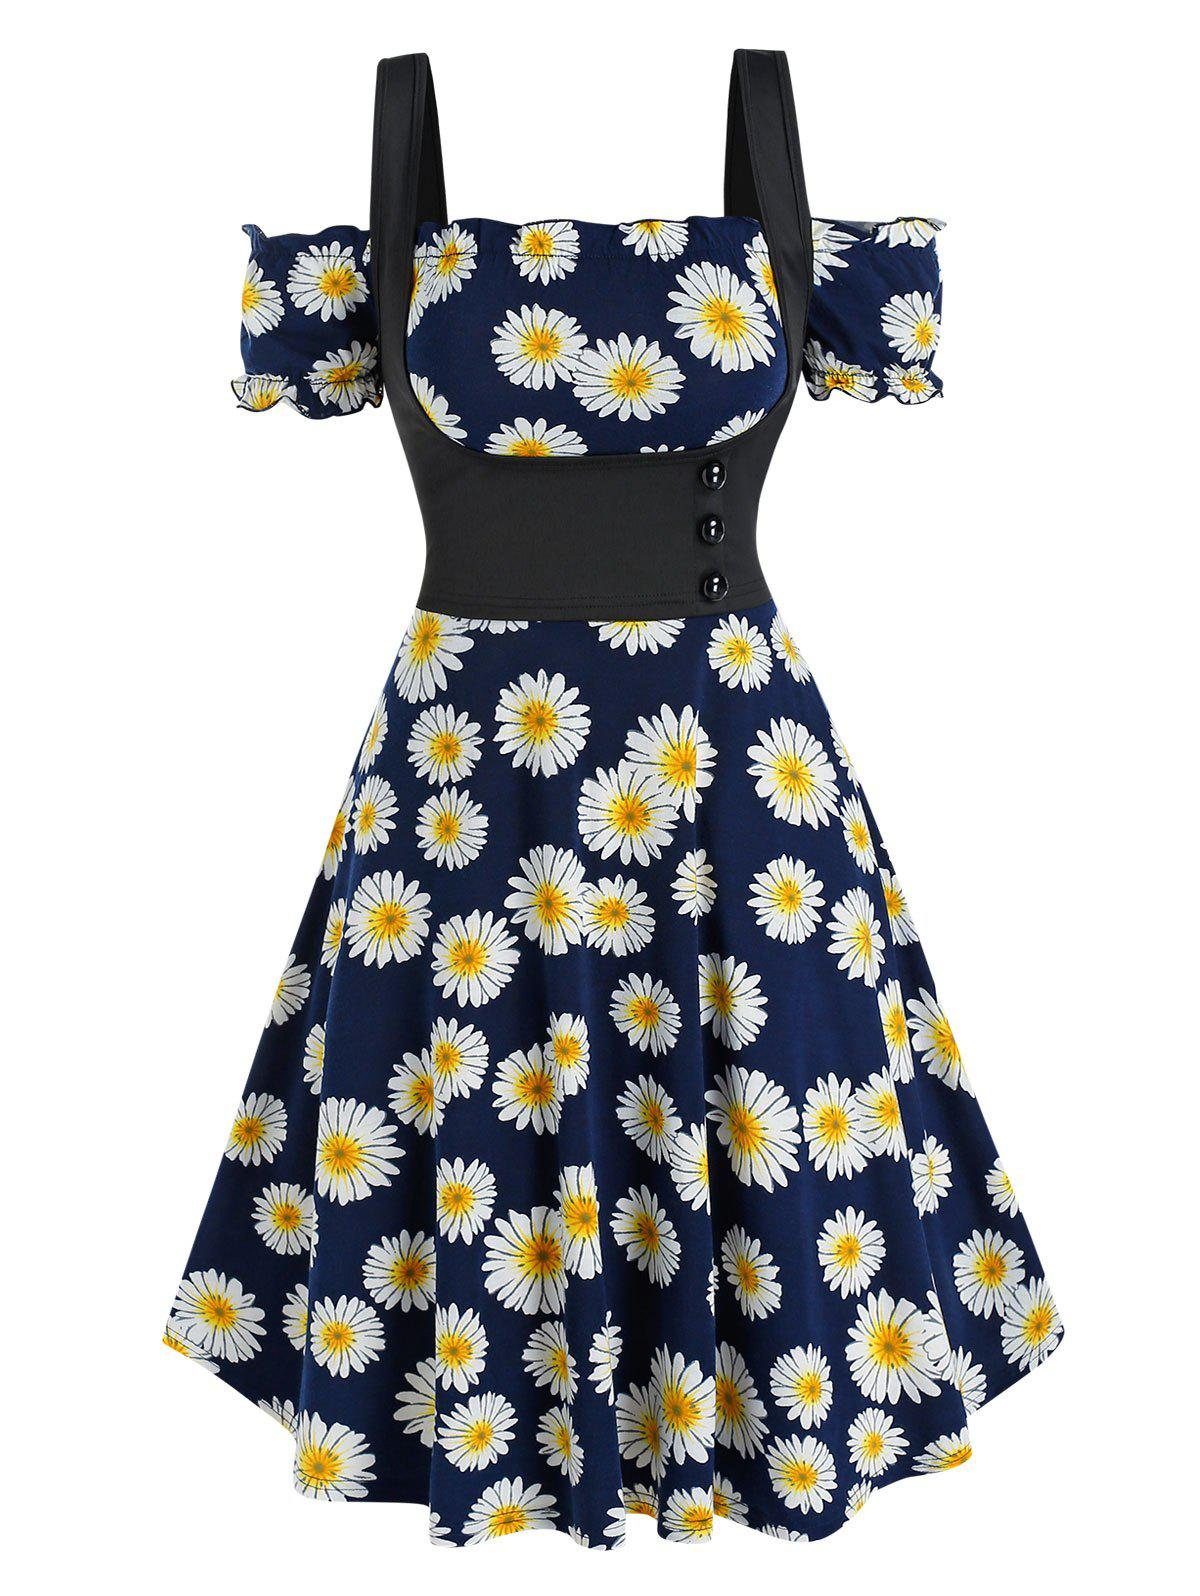 Latest Off The Shoulder Daisy Print Dress and Top Twinset